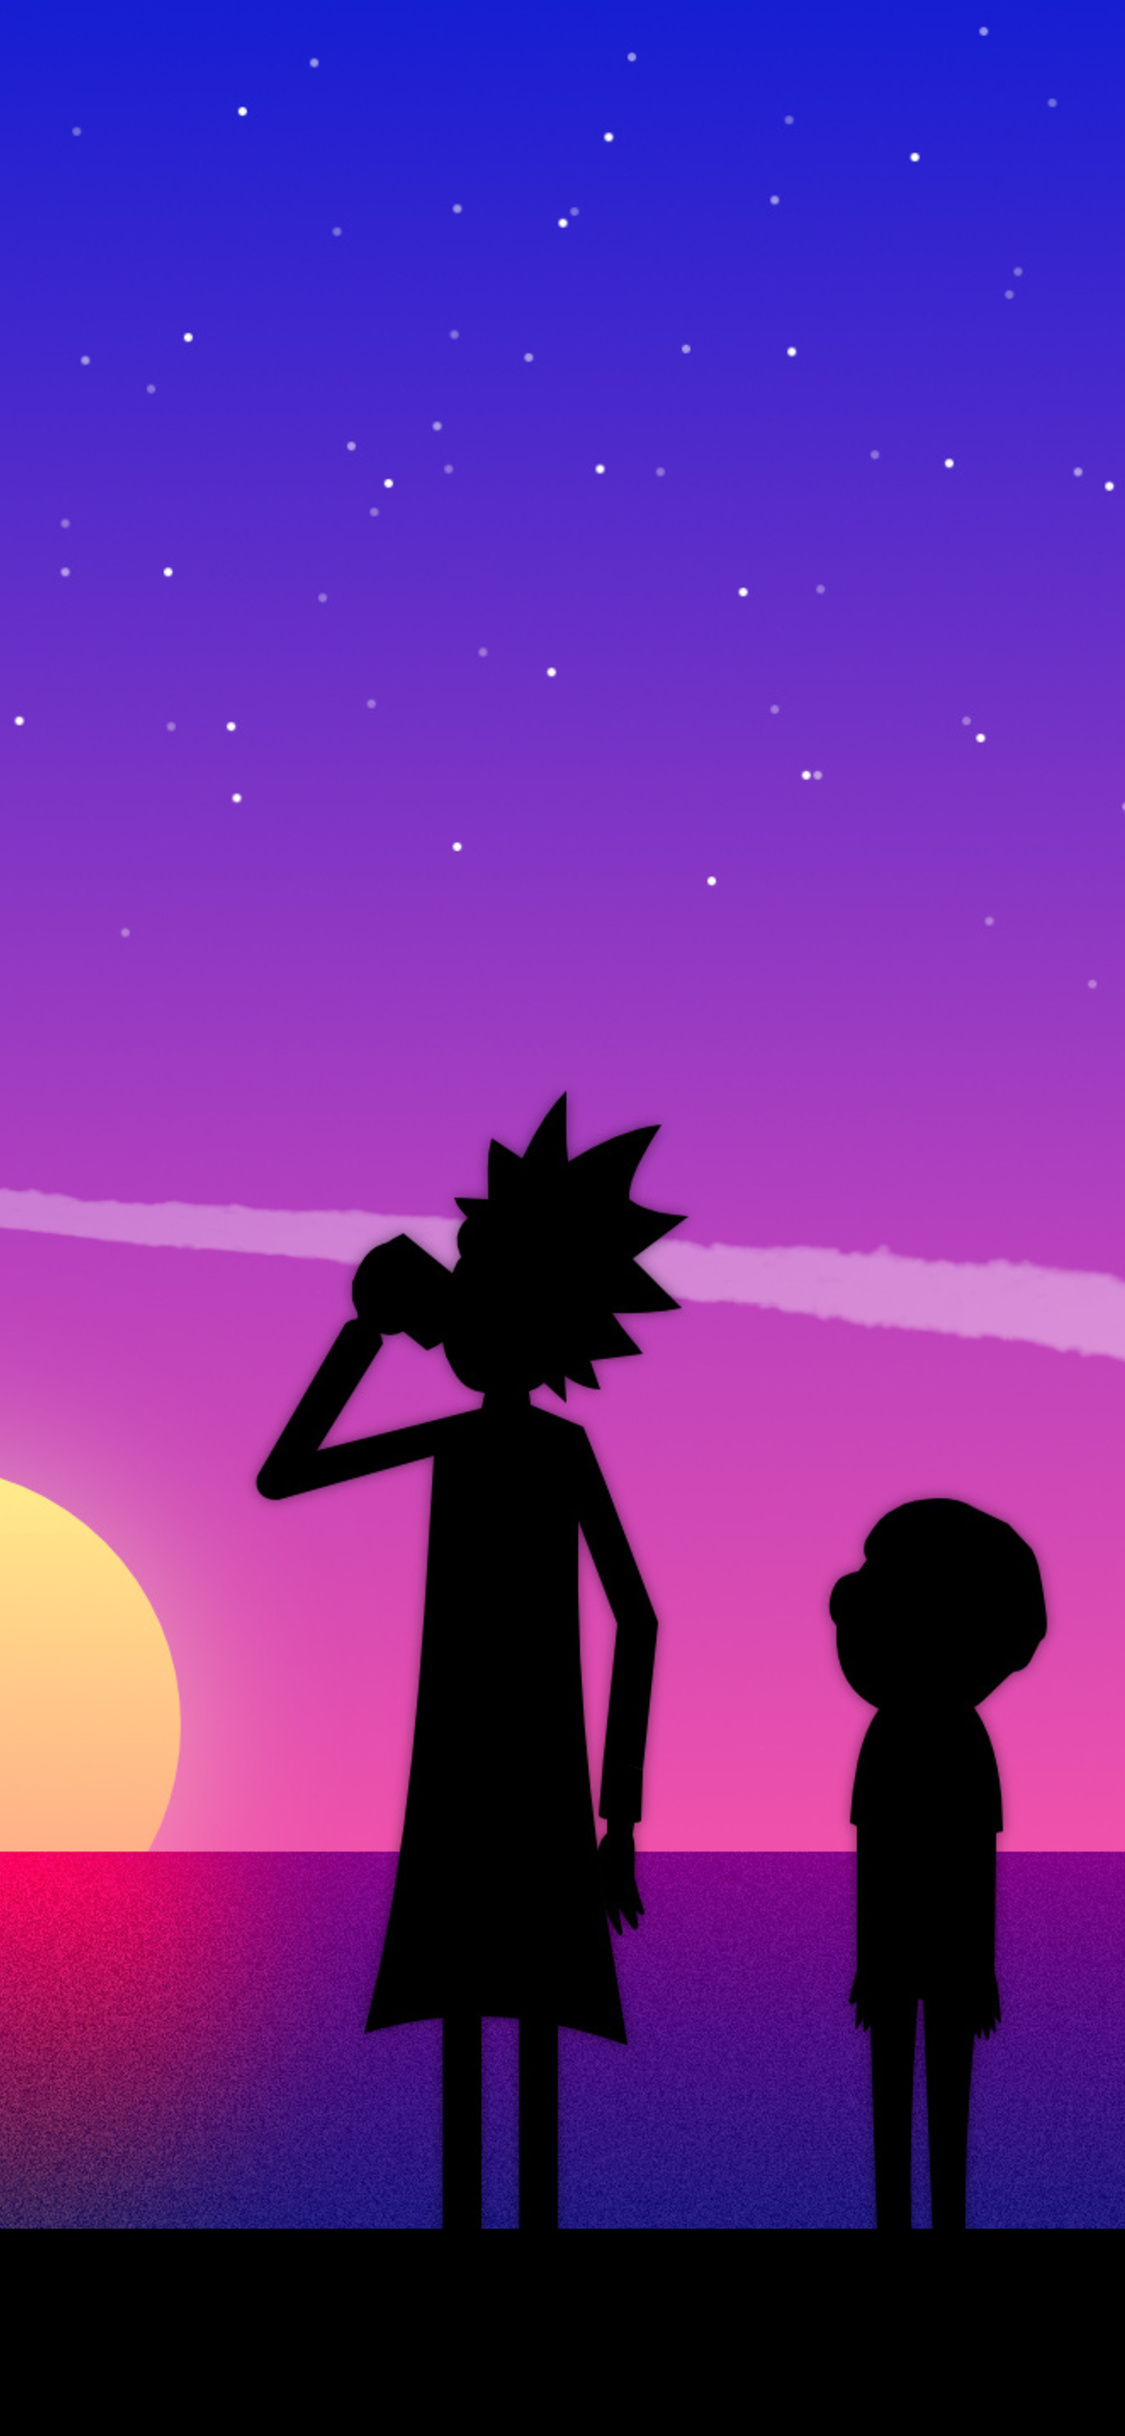 1125x2436 Rick And Morty Vaporwave Art Iphone Xs Iphone 10